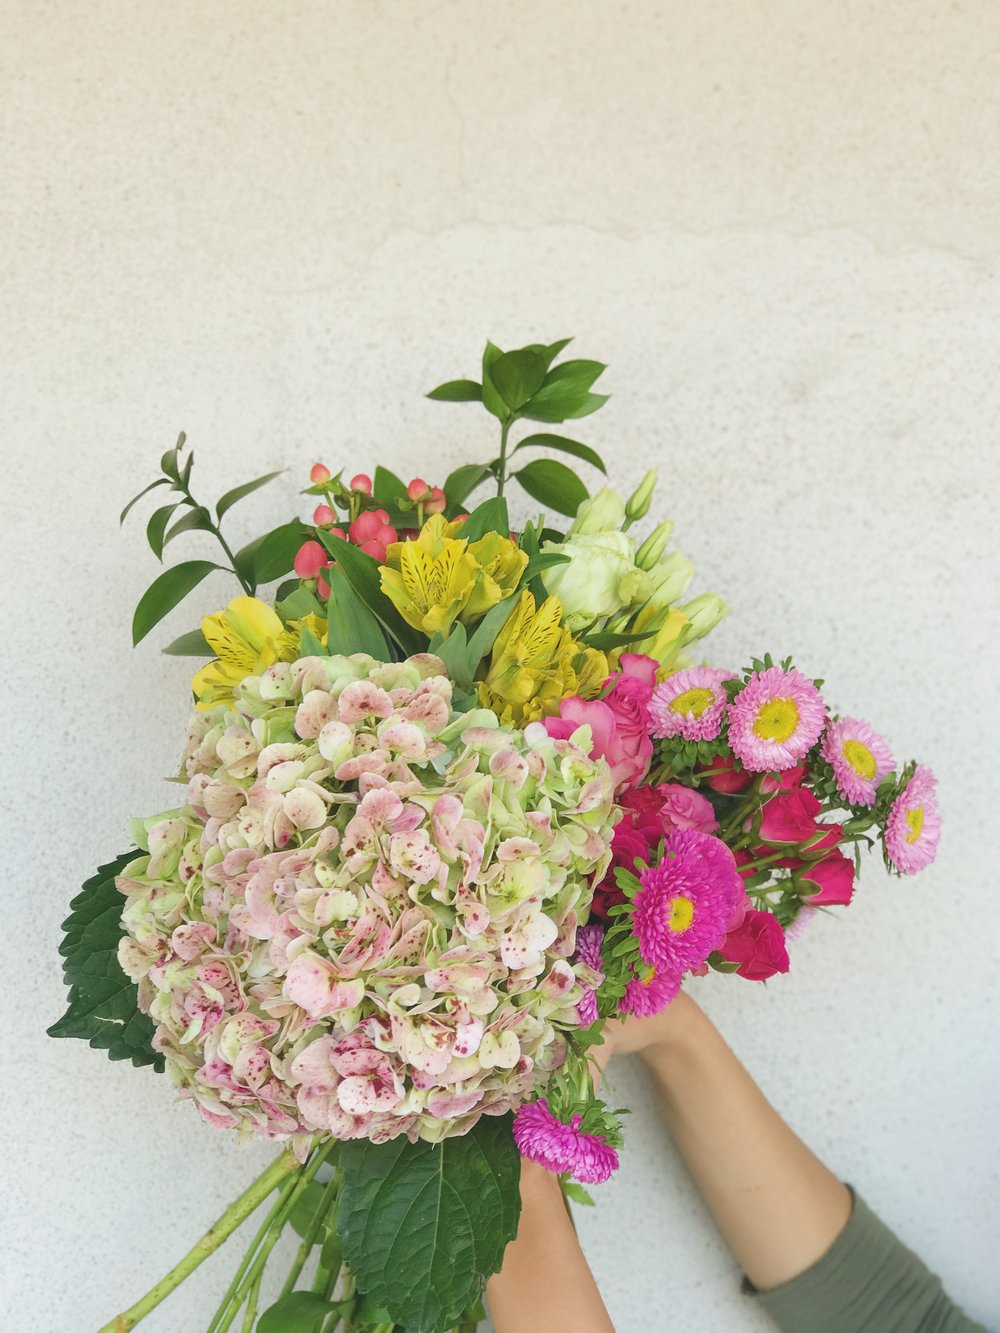 Flowers pictured: Antique hydrangeas, Japanese Aster, Spray Roses, Hypericum Berries, Alstroemeria, Lisianthus, Israeli Ruscus